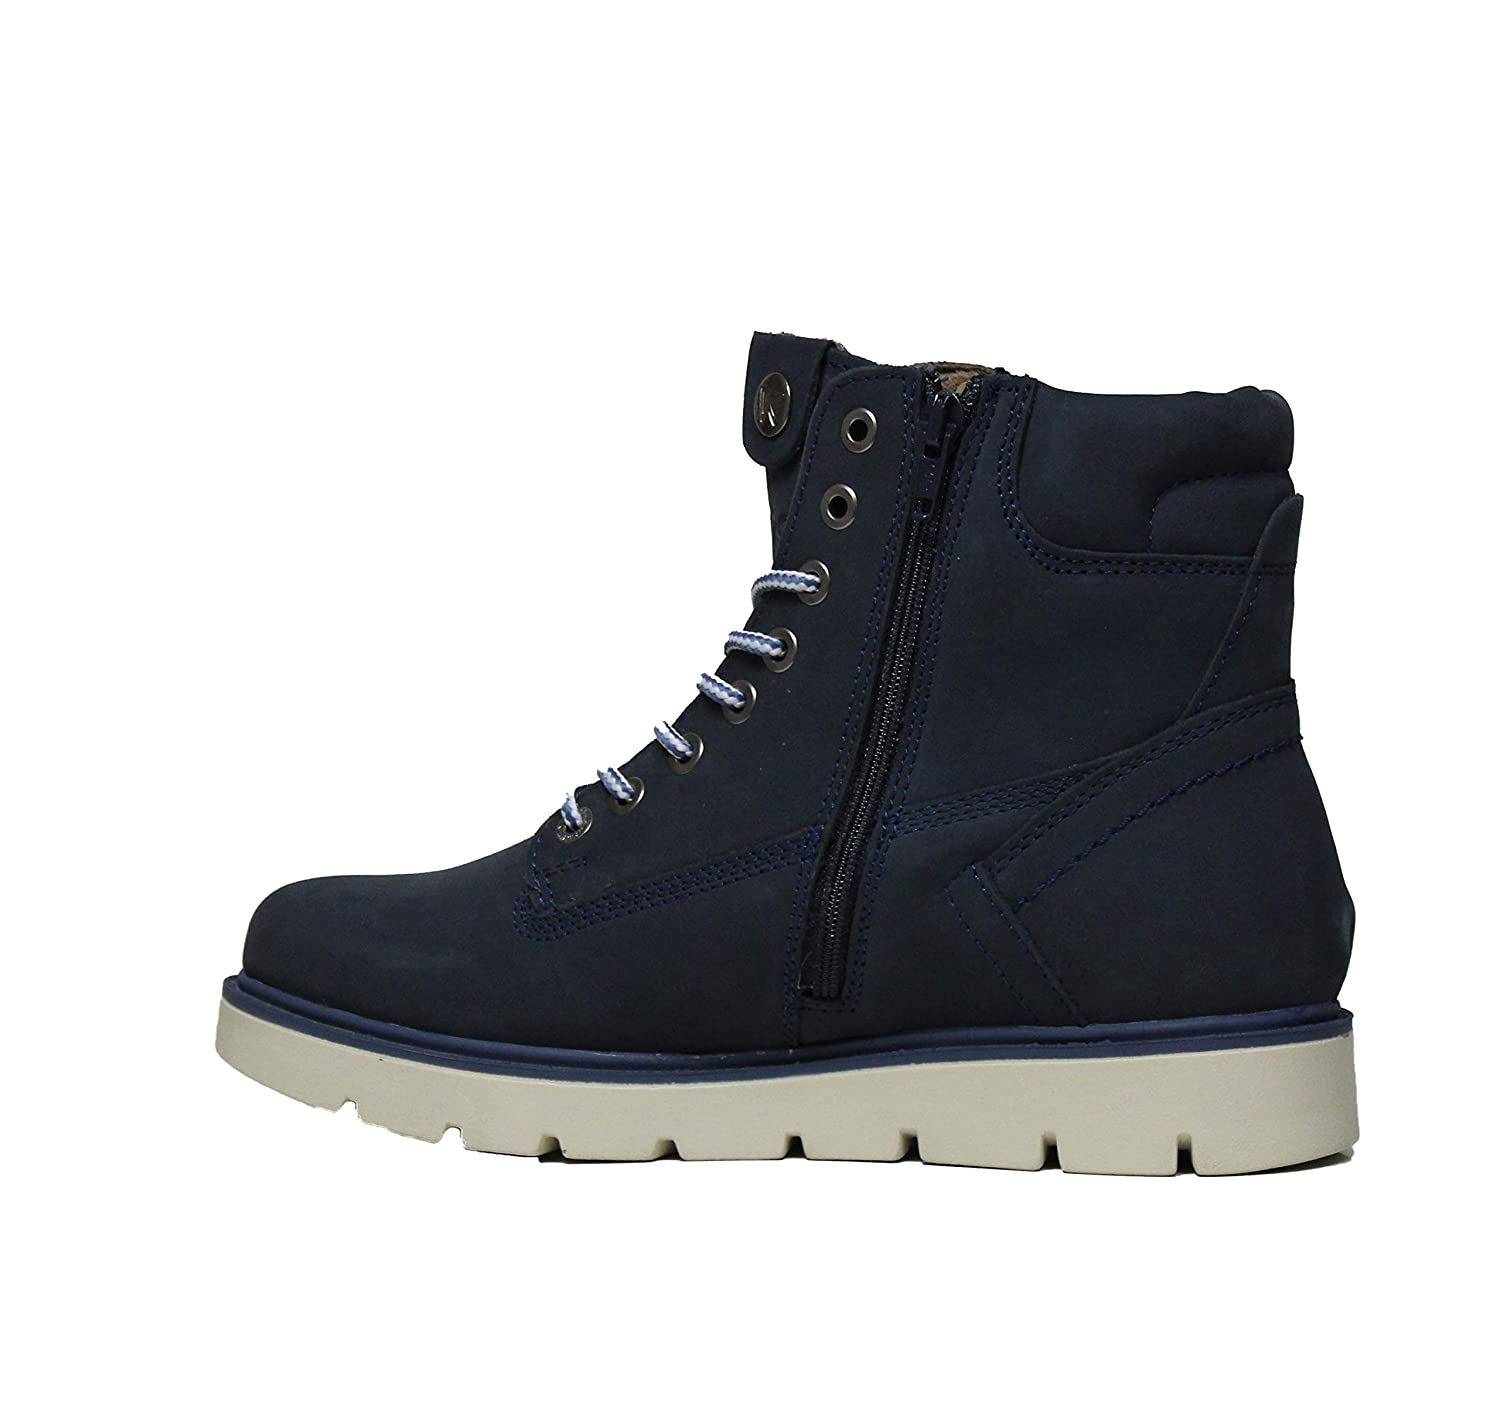 Wrangler WL182510 Tucson Lady Nubuck Jeans Womens Ankle Boot in Suede Jeans Color Size